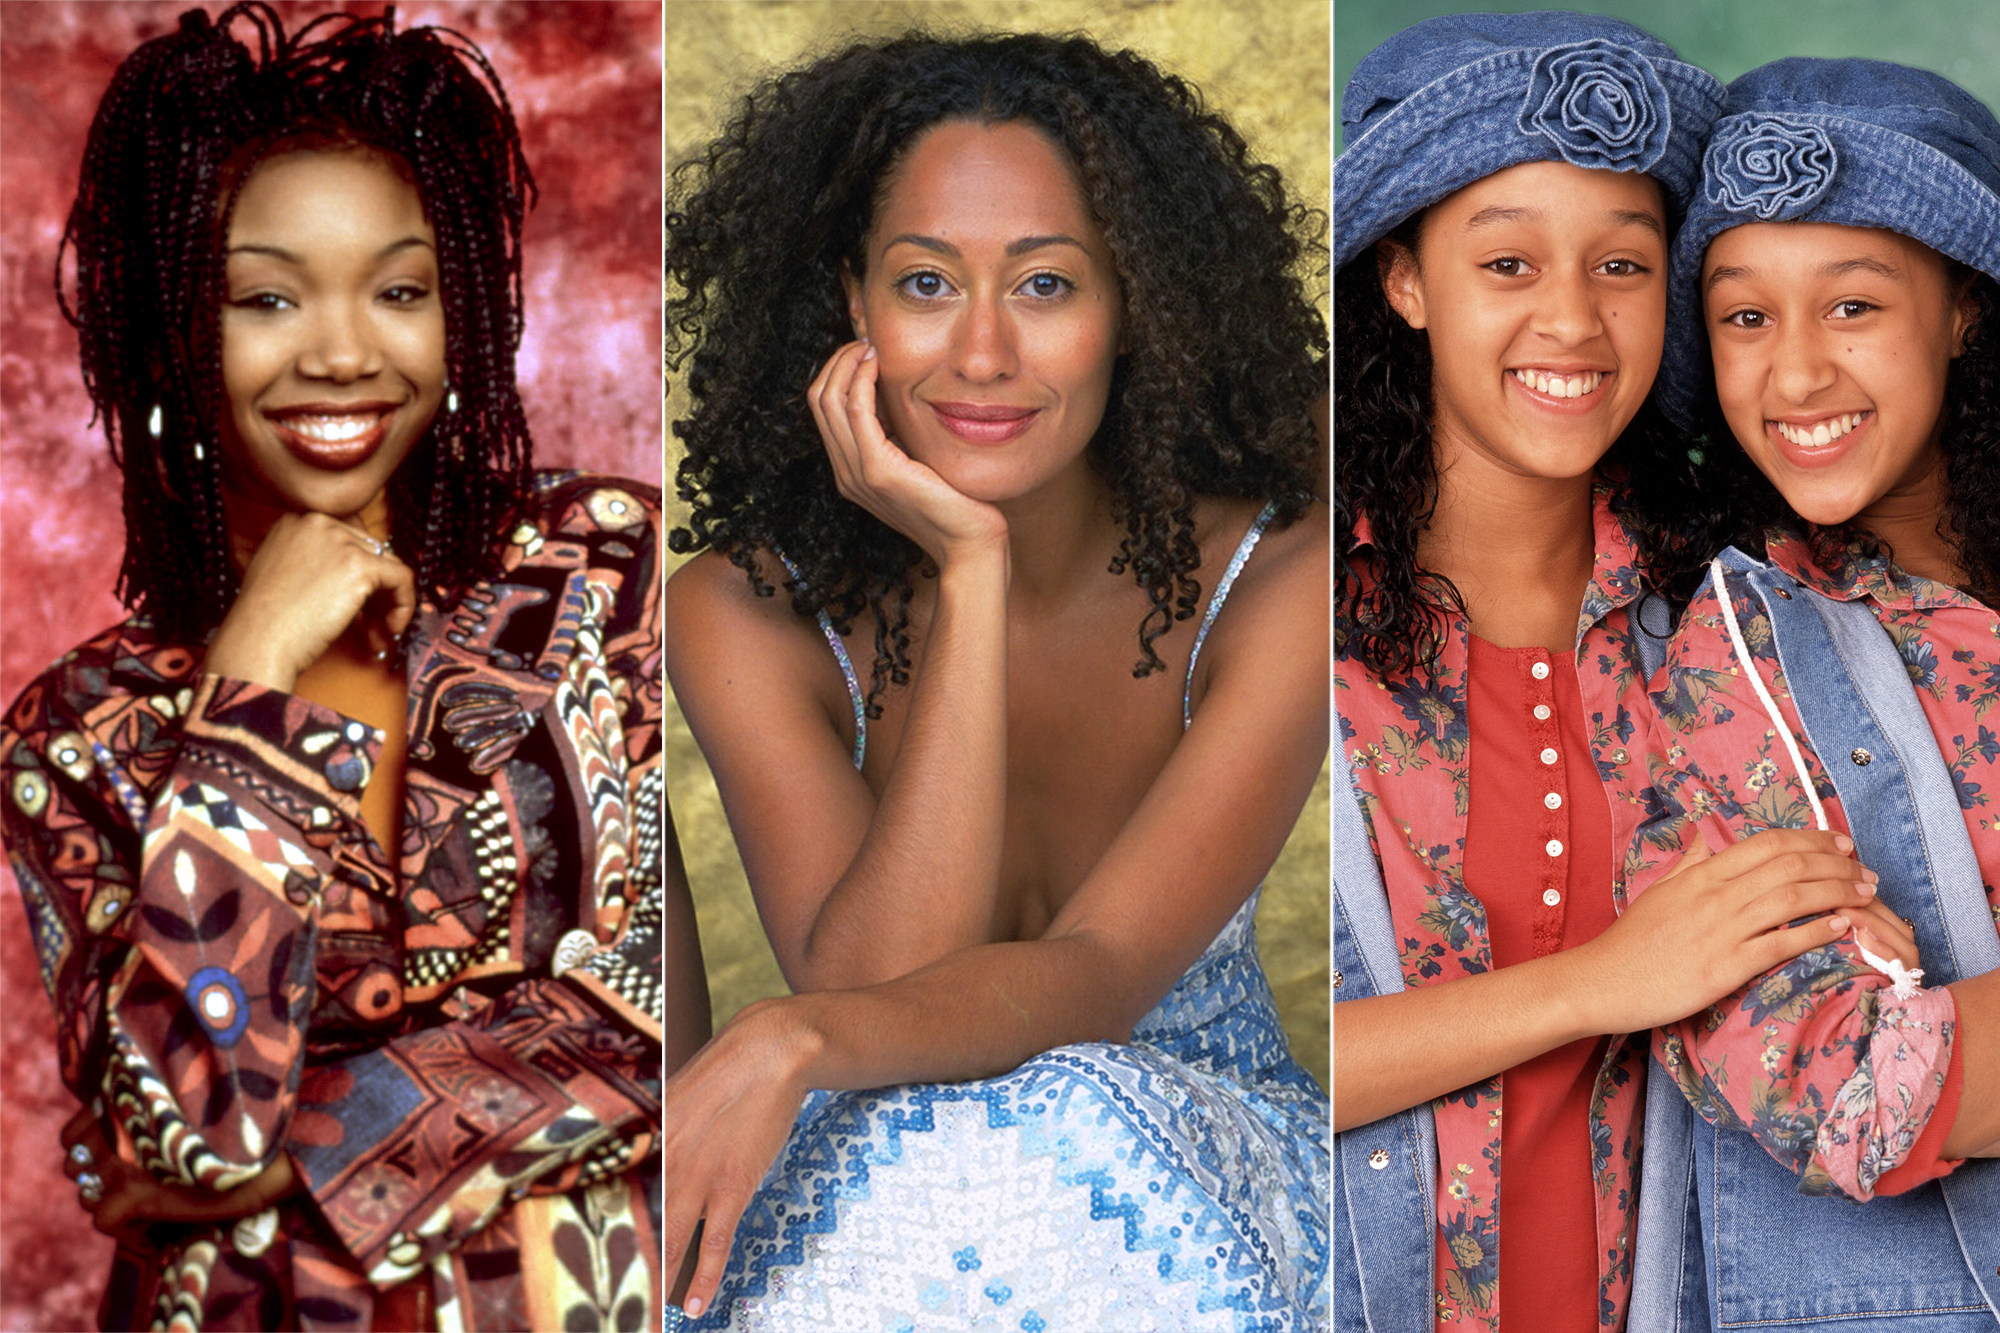 Moesha, Girlfriends, and Sister, Sister